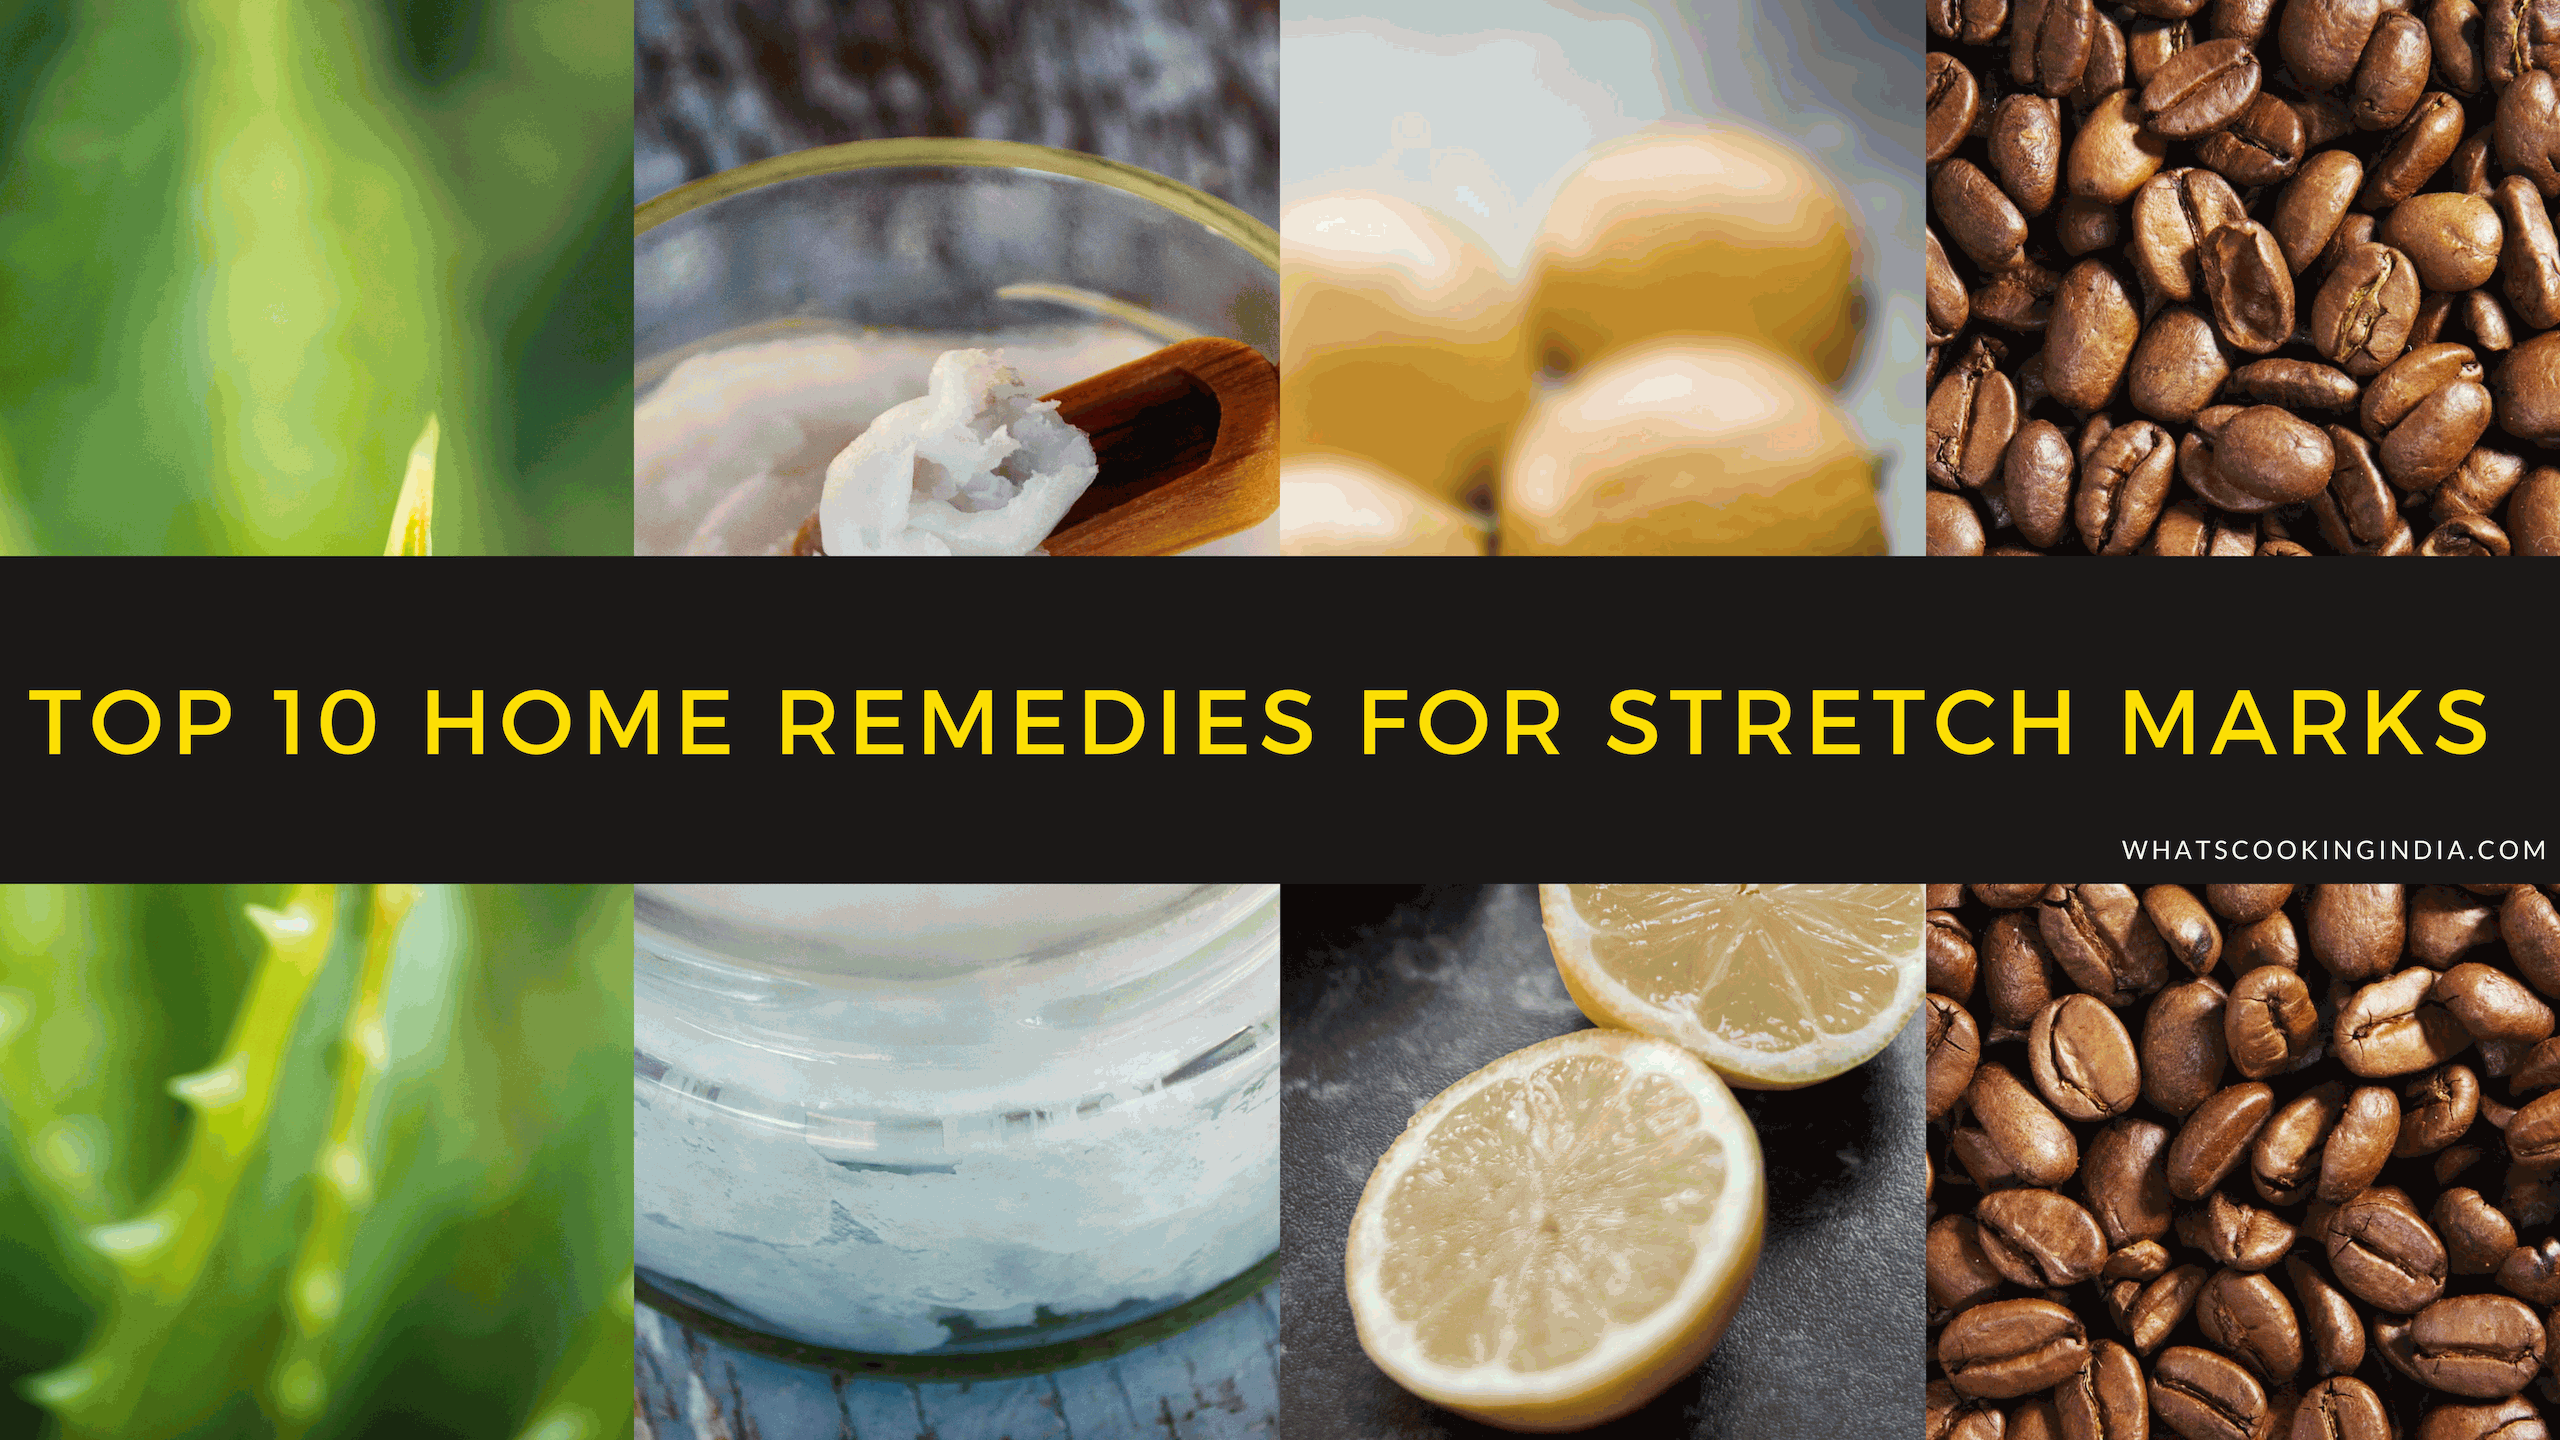 Home Remedies For Stretch Marks